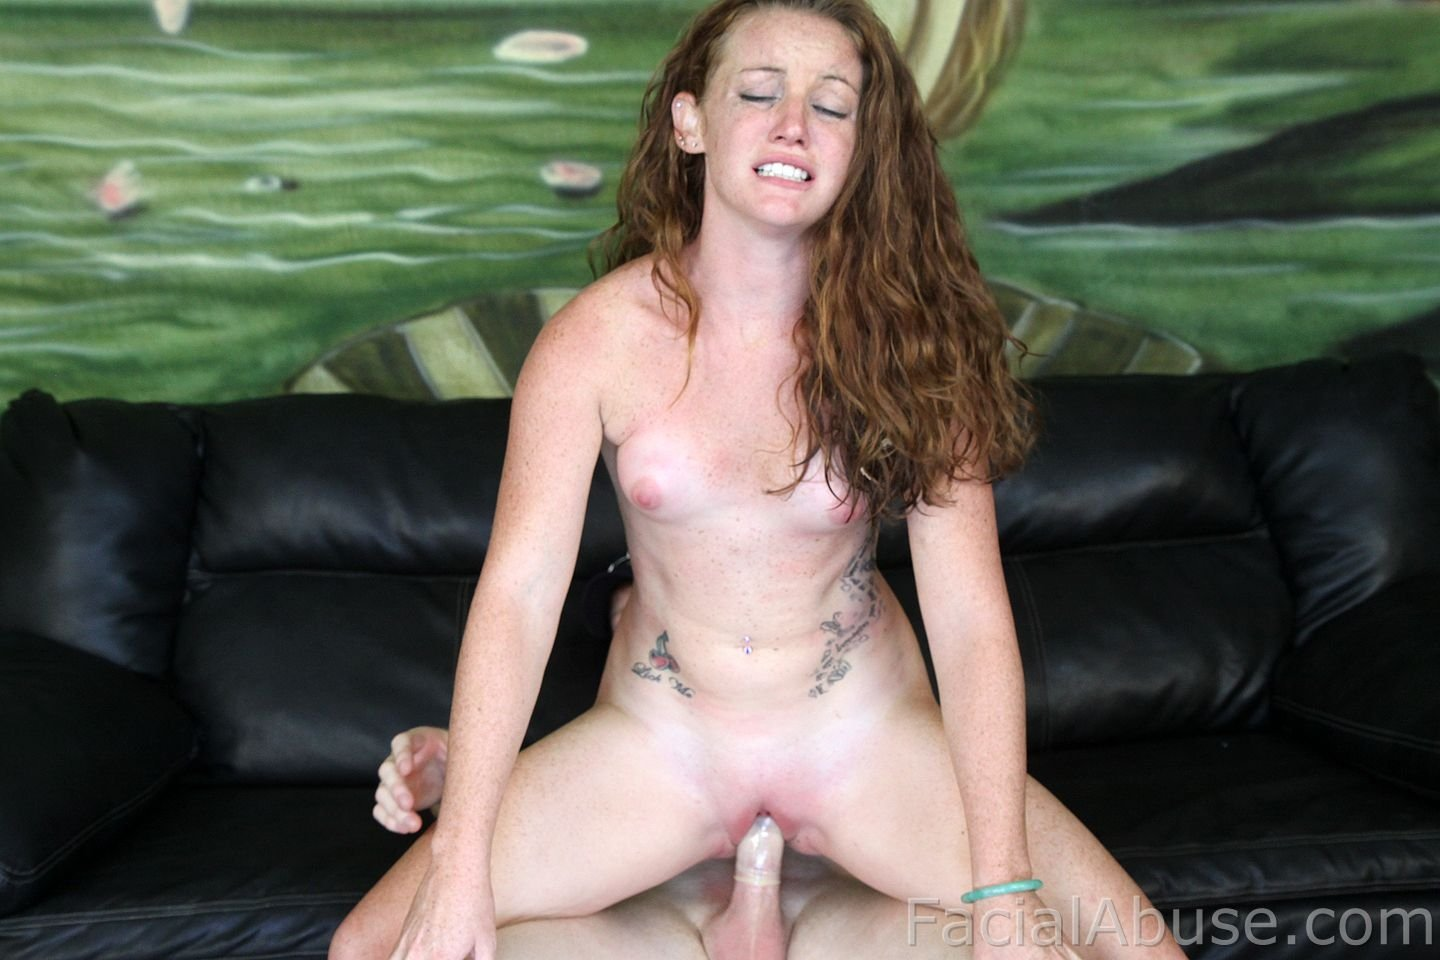 chaturbate anal huge tits tight